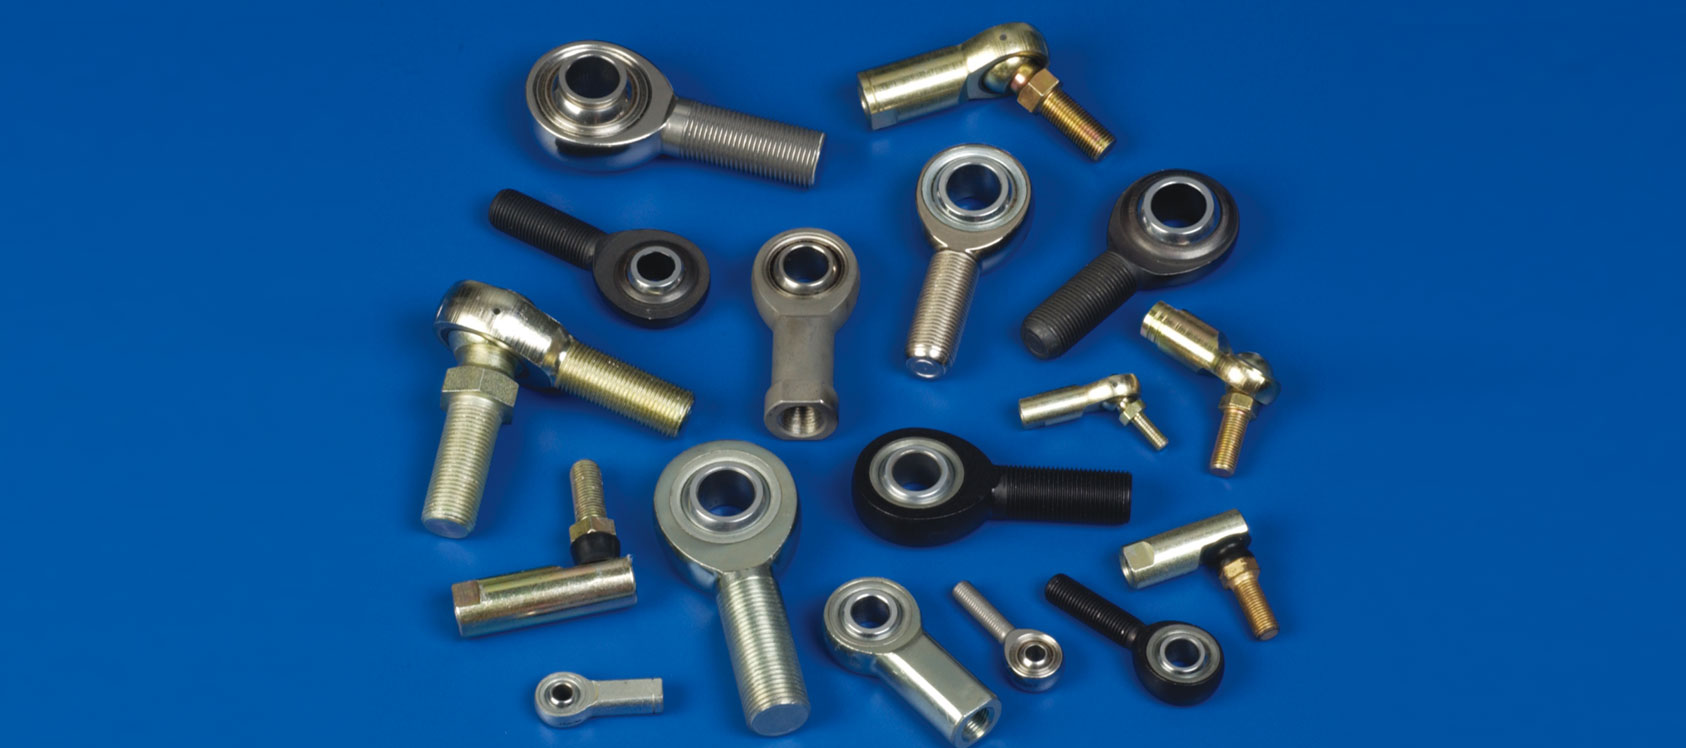 Cablecraft linkages rod ends